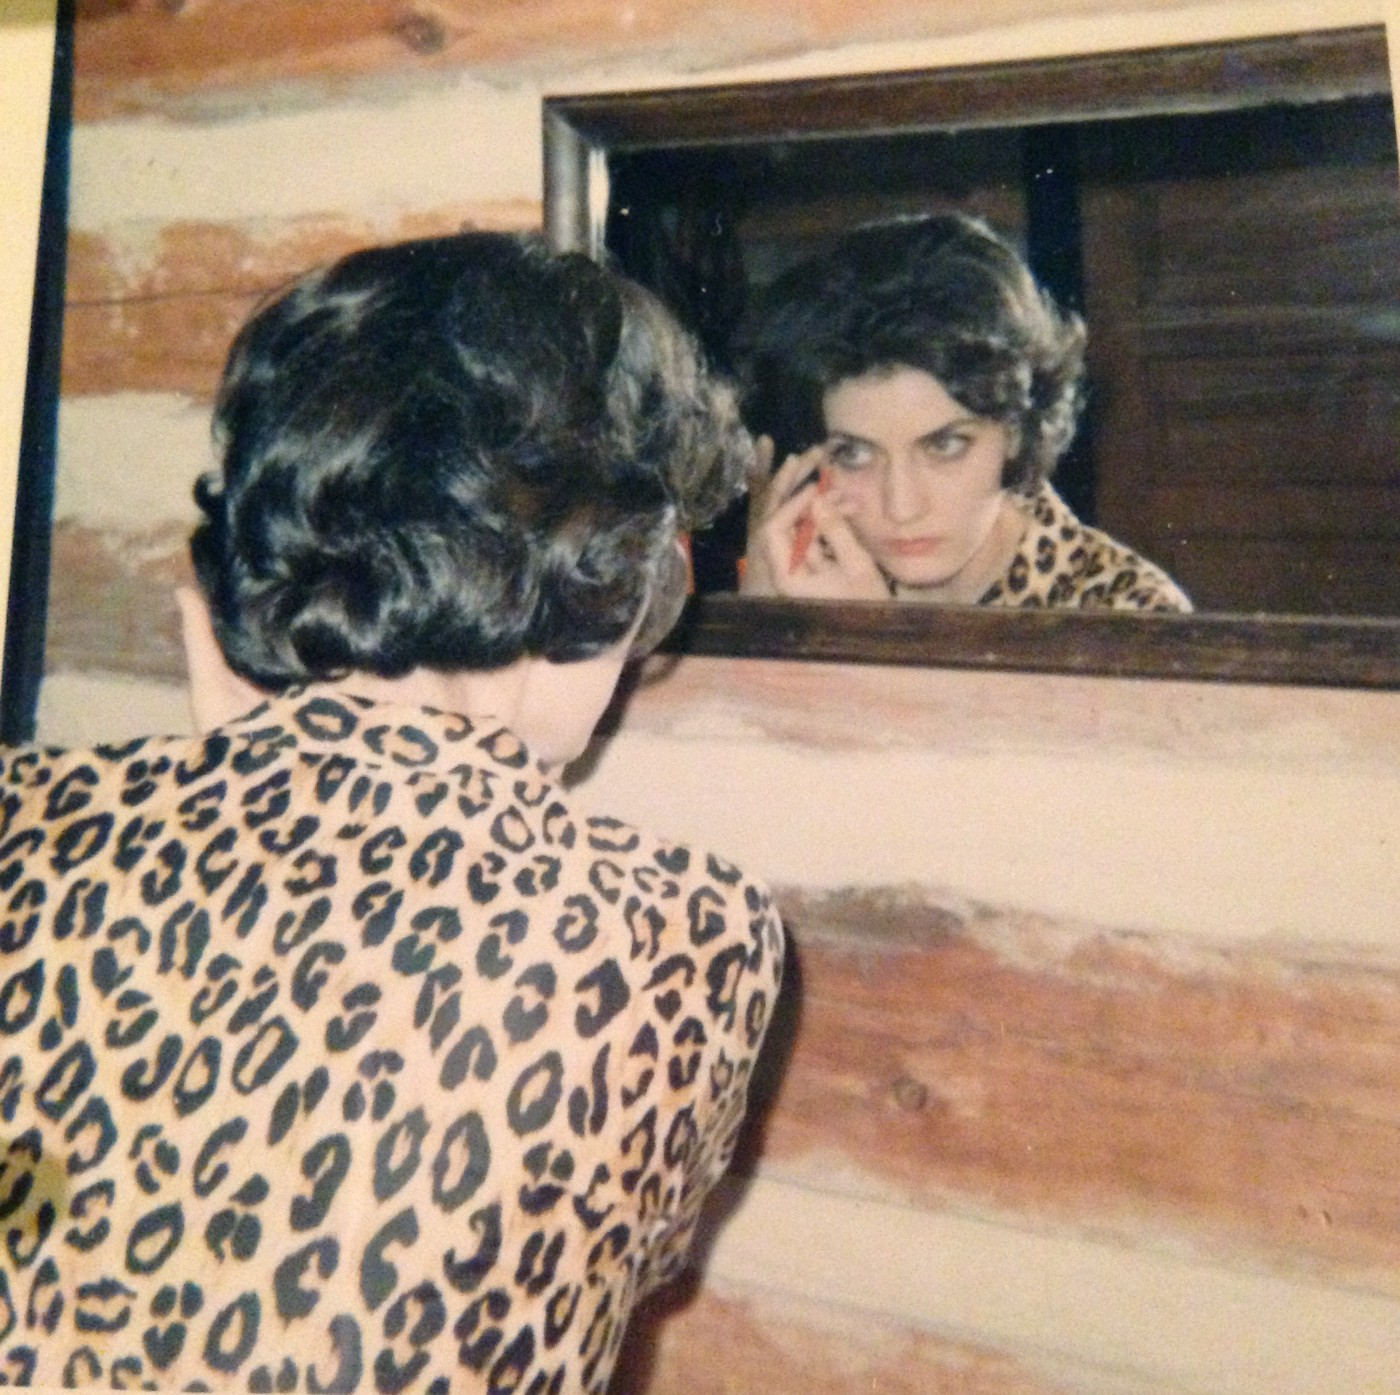 A young woman in a leopard-print top looks into a mirror as she applies makeup.